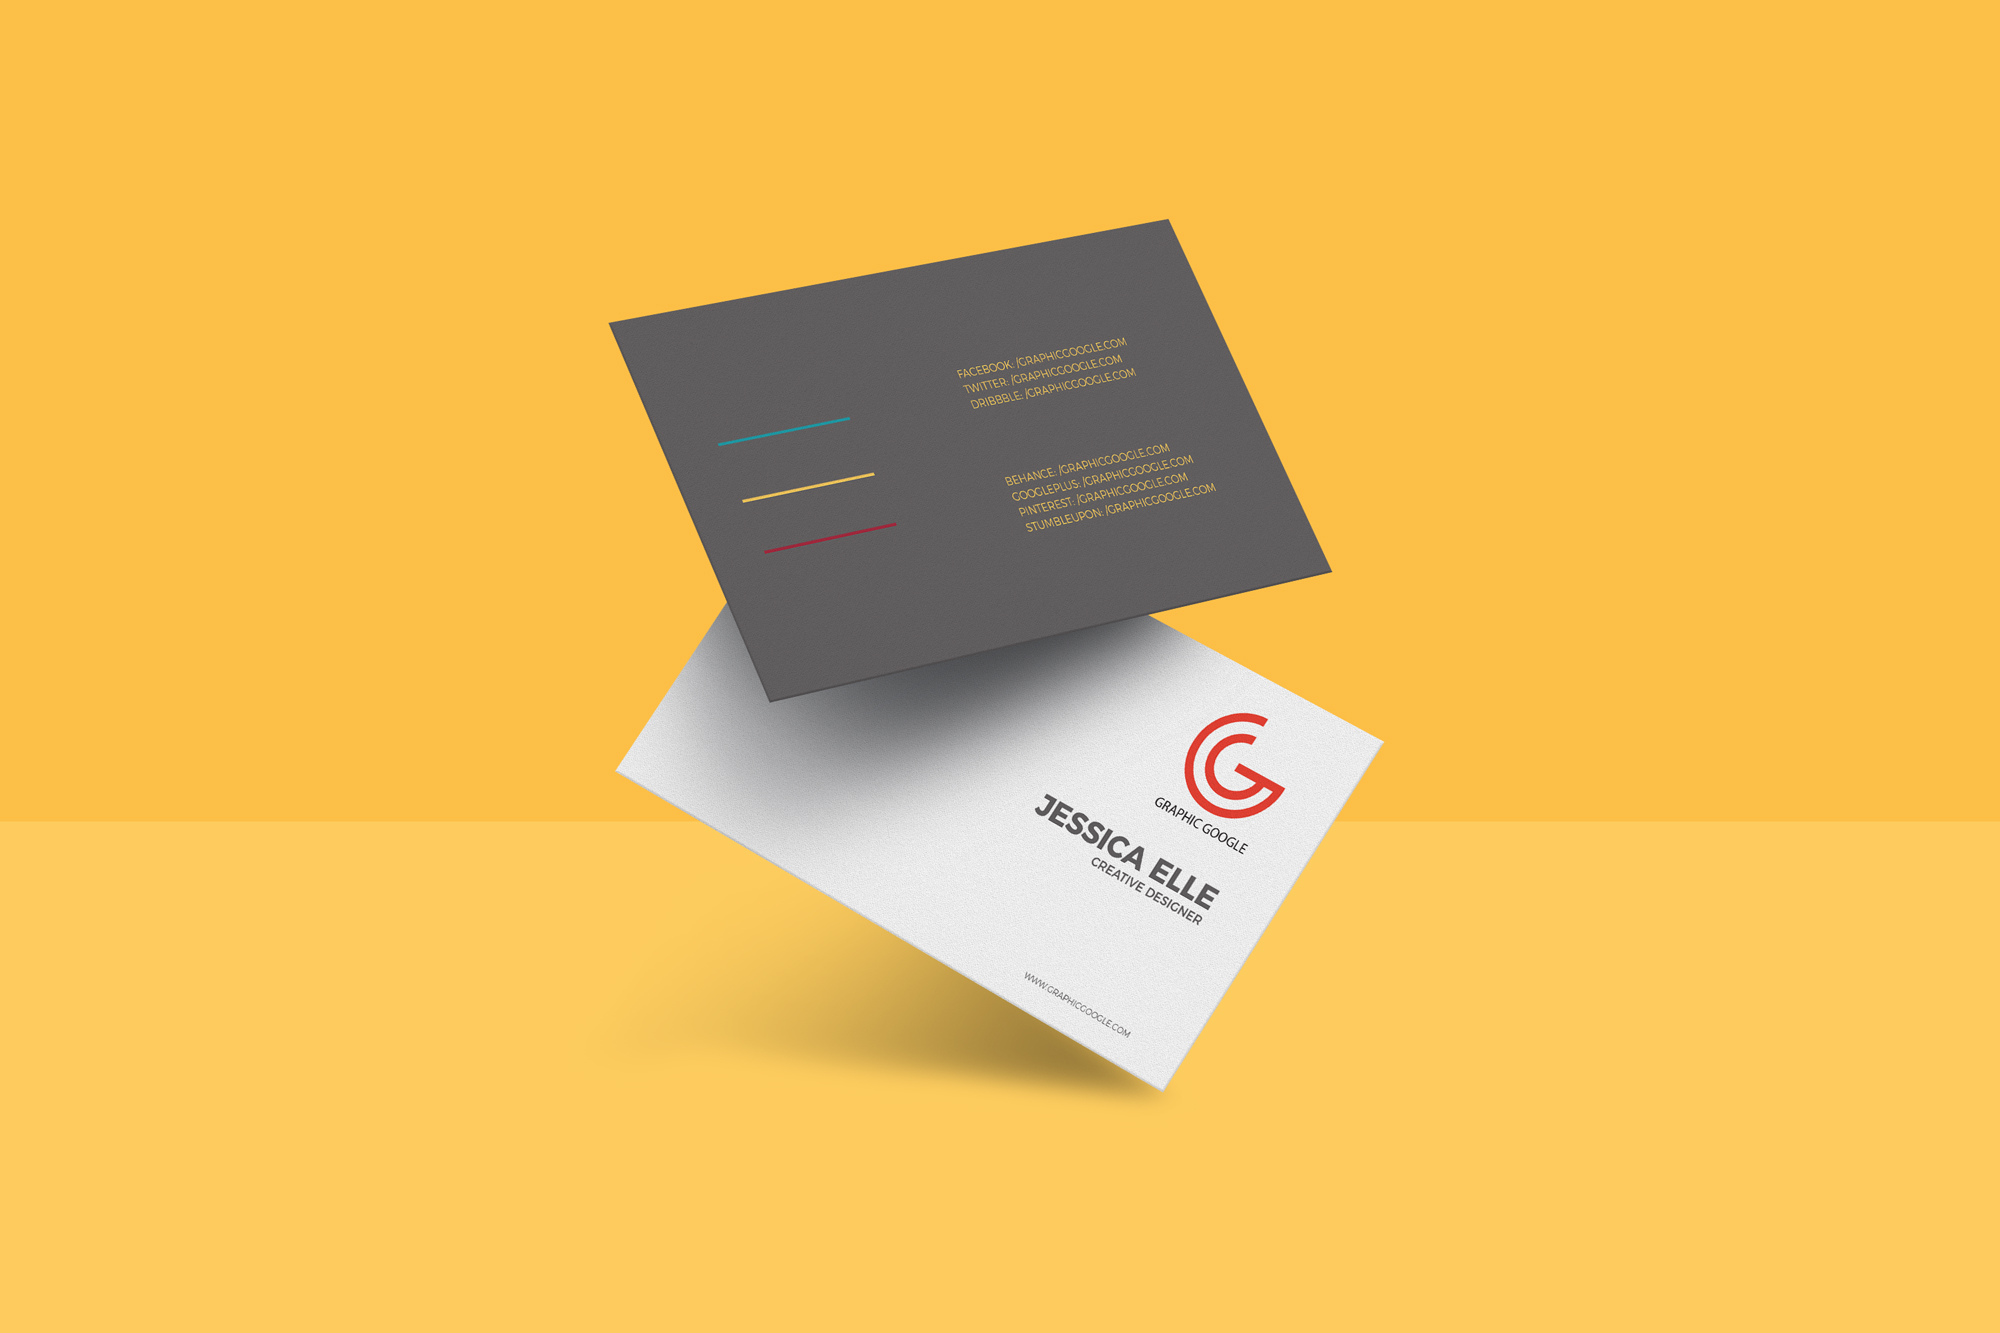 business card presentation template psd - free floating business card mockup